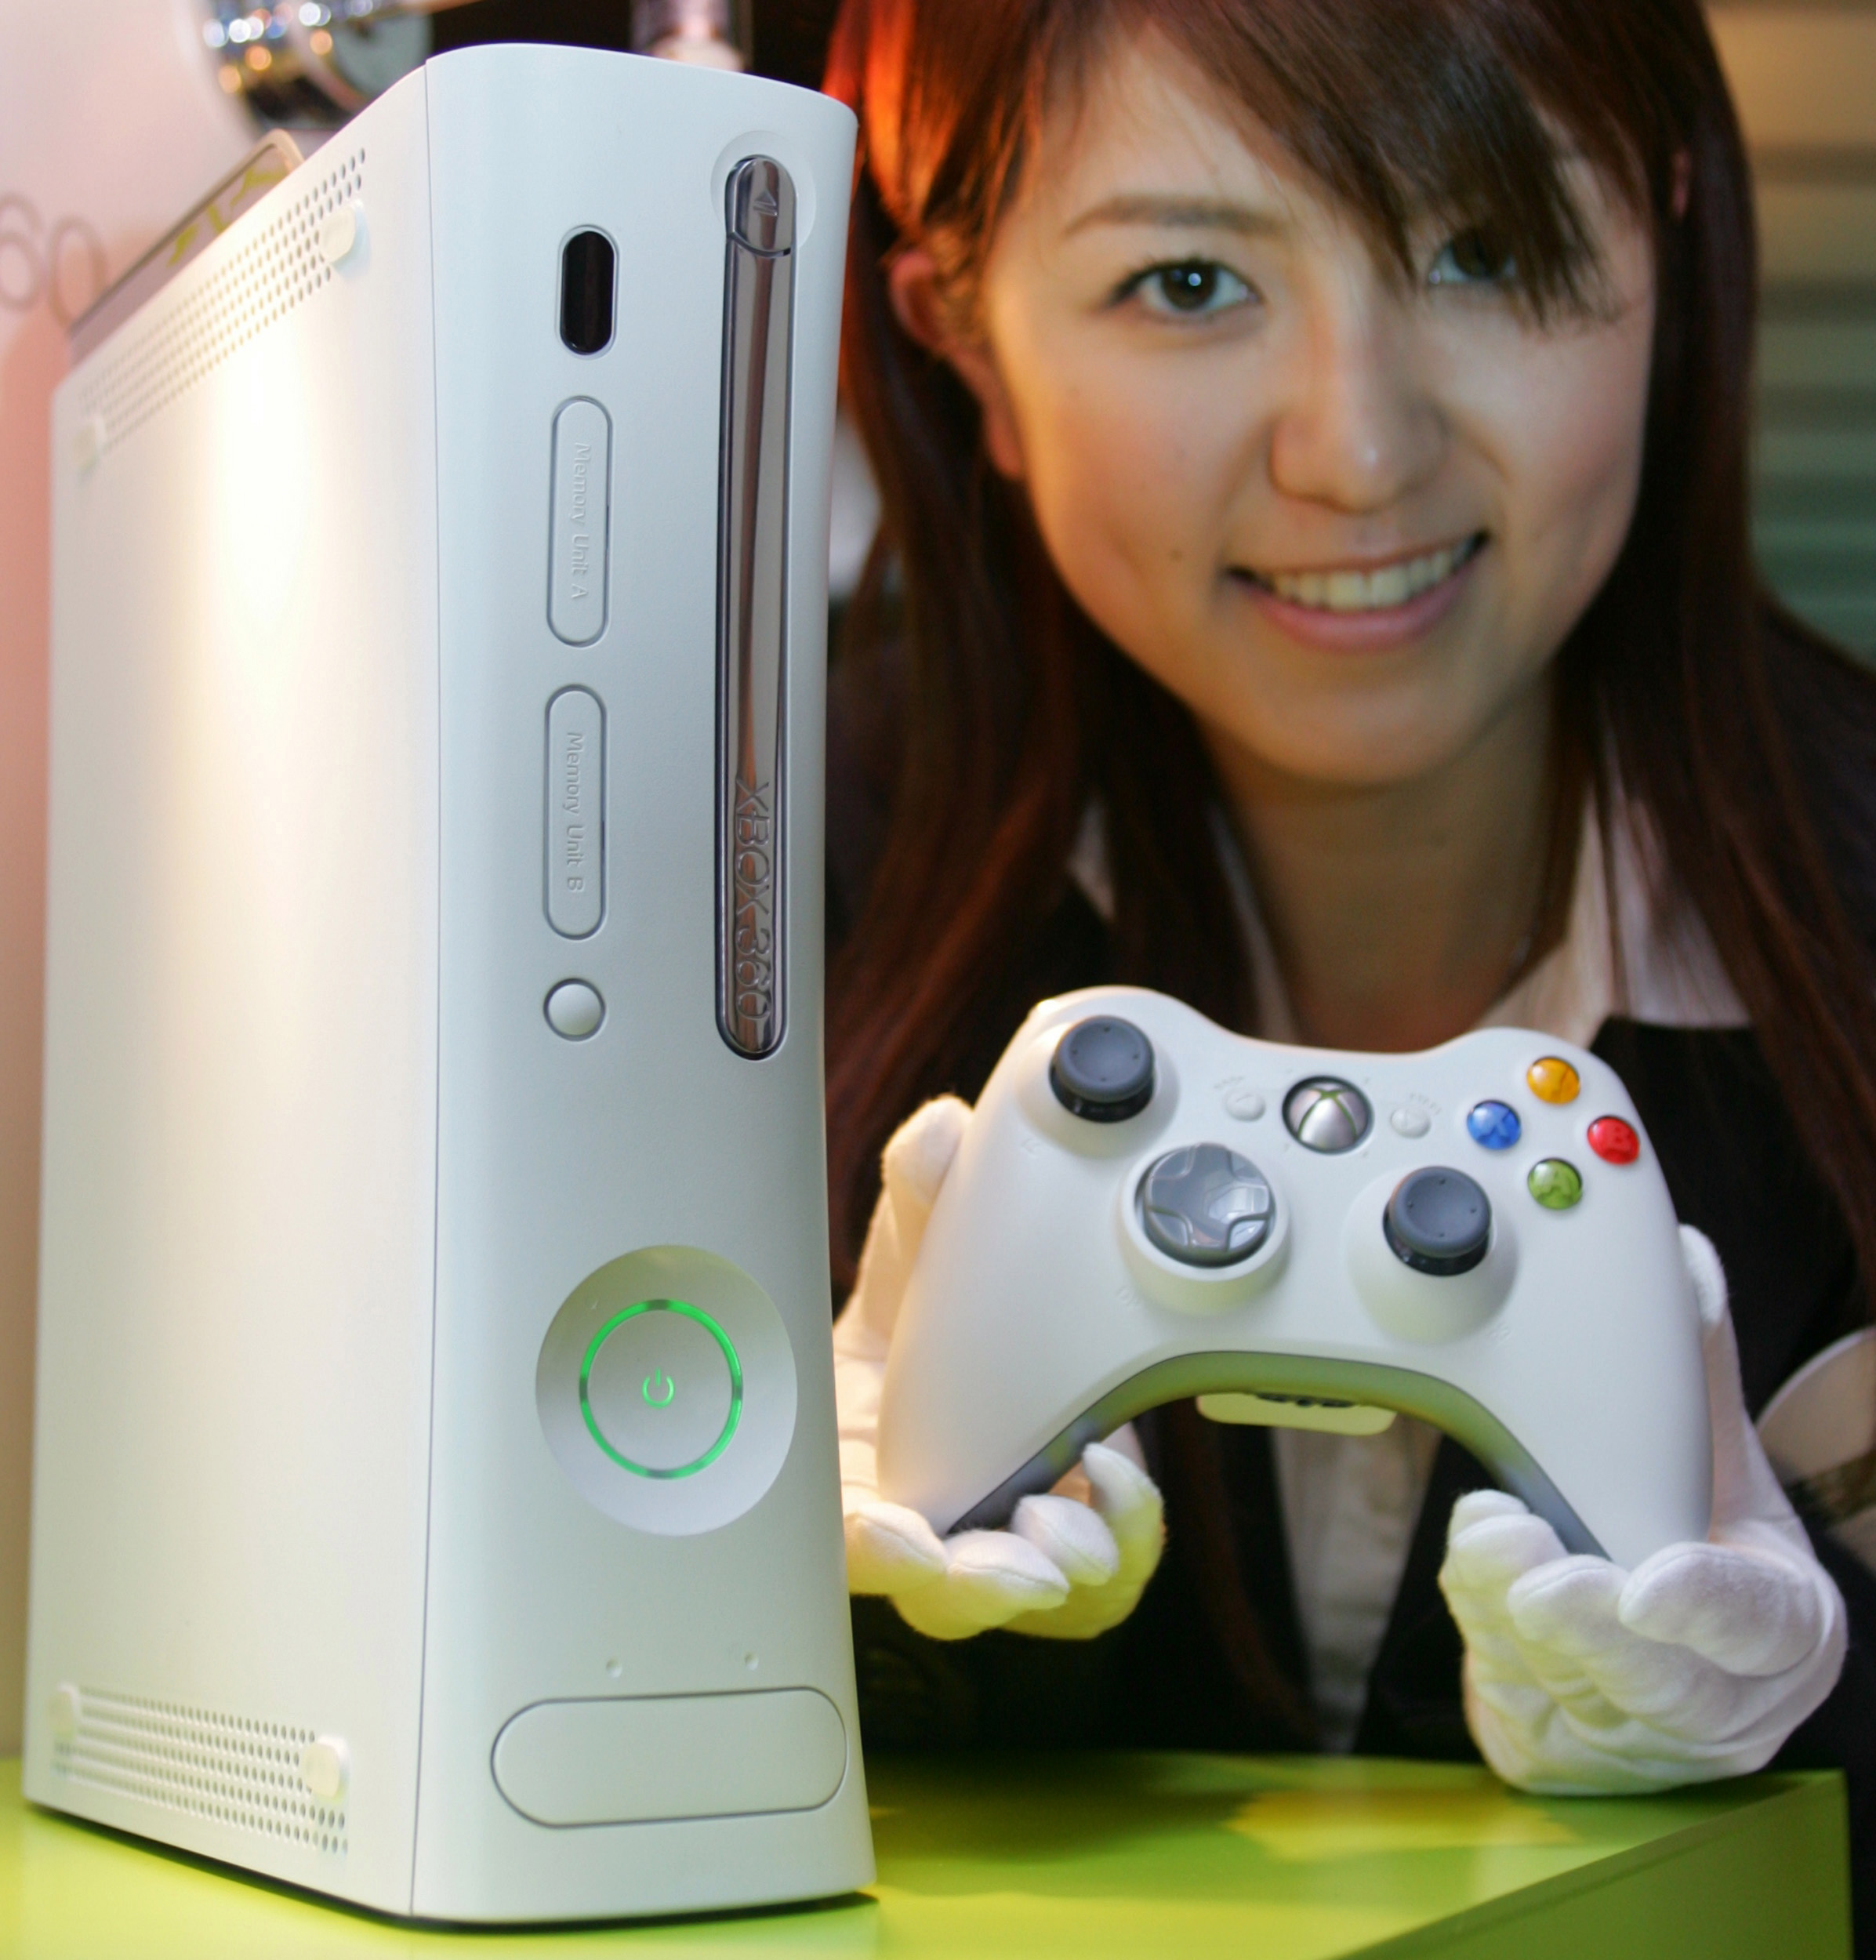 "A Japanese woman displays Microsoft's new game console ""Xbox 360"" in Tokyo May 13, 2005. The video game console has three IBM microprocessors that are expected to deliver powerful computing and advanced graphics, as well as a detachable 20-gigabyte hard drive and the ability to customise the machine's front panel with detachable face-plates. A Japanese woman displays Microsoft's new game console ""Xbox 360"" in Tokyo May 13, 2005. The video game console has three IBM microprocessors that are expected to deliver powerful computing and advanced graphics, as well as a detachable 20-gigabyte hard drive and the ability to customise the machine's front panel with detachable face-plates.   REUTERS/Toru Hanai"